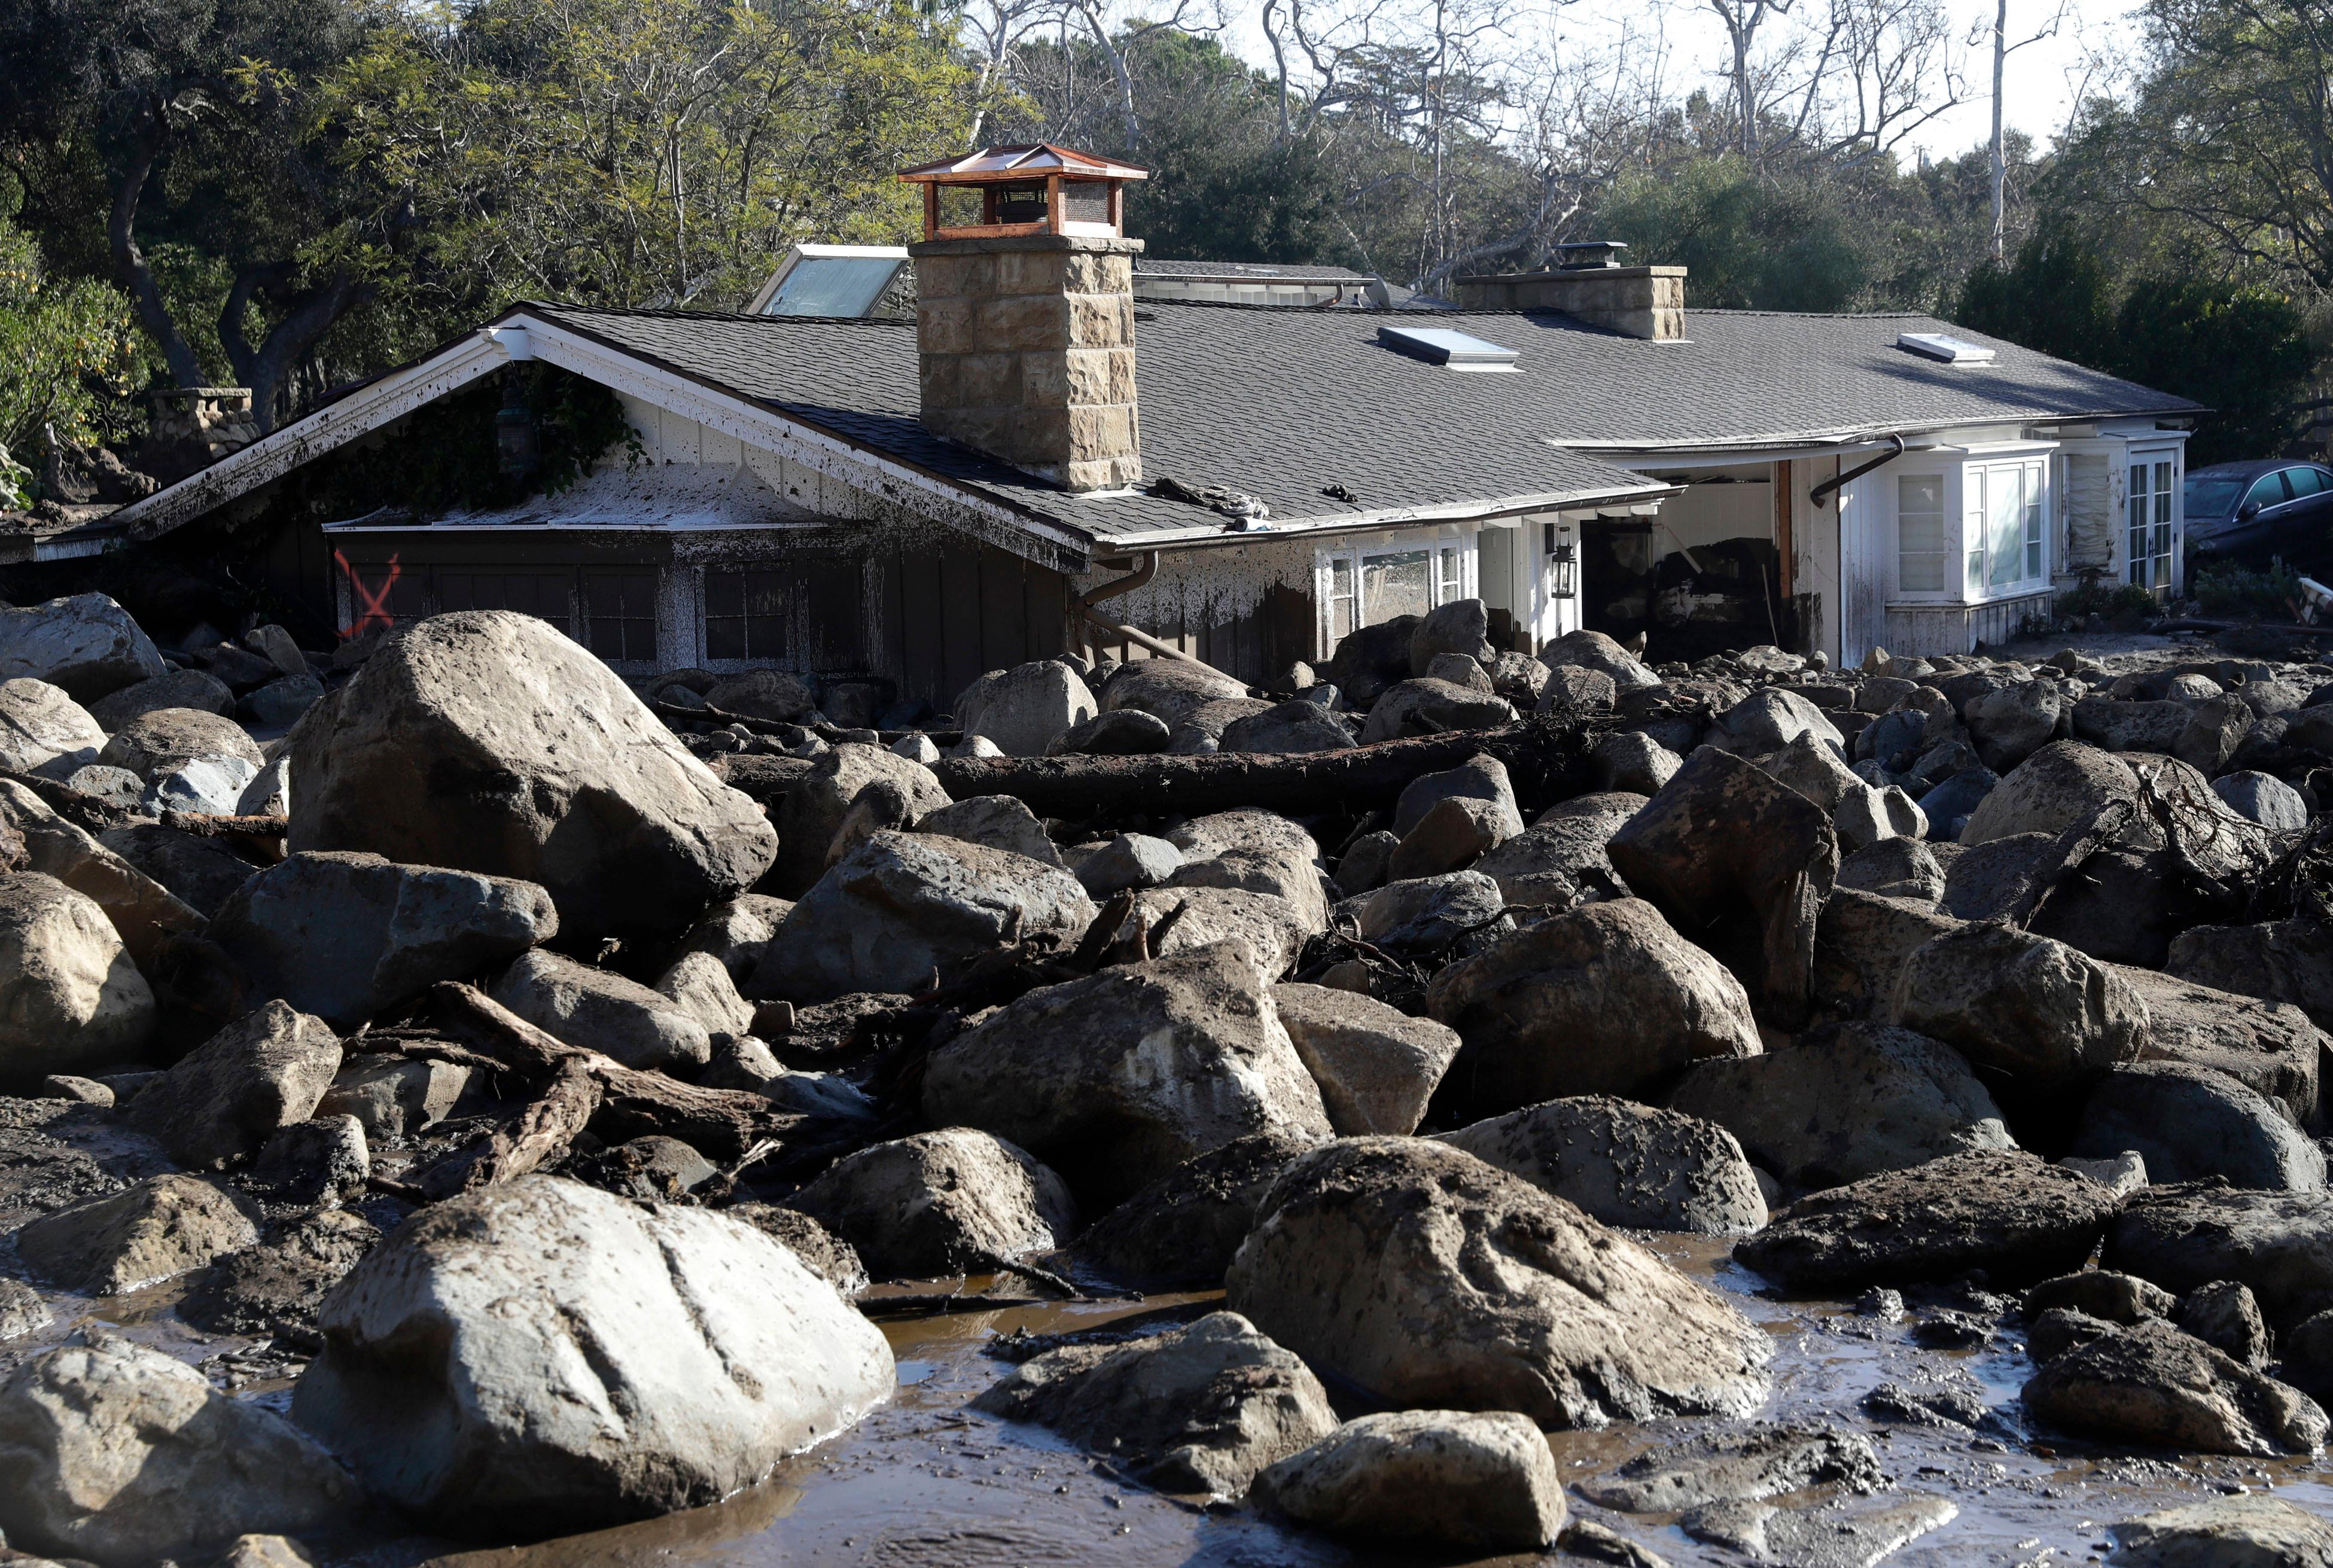 Large rocks and mud are shown in front of a house in Montecito, Calif., Thursday, Jan. 11, 2018. Hundreds of rescue workers slogged through knee-deep ooze and used long poles to probe for bodies Thursday as the search dragged on for victims of the mudslides that slammed this wealthy coastal town. (AP Photo/Marcio Jose Sanchez)